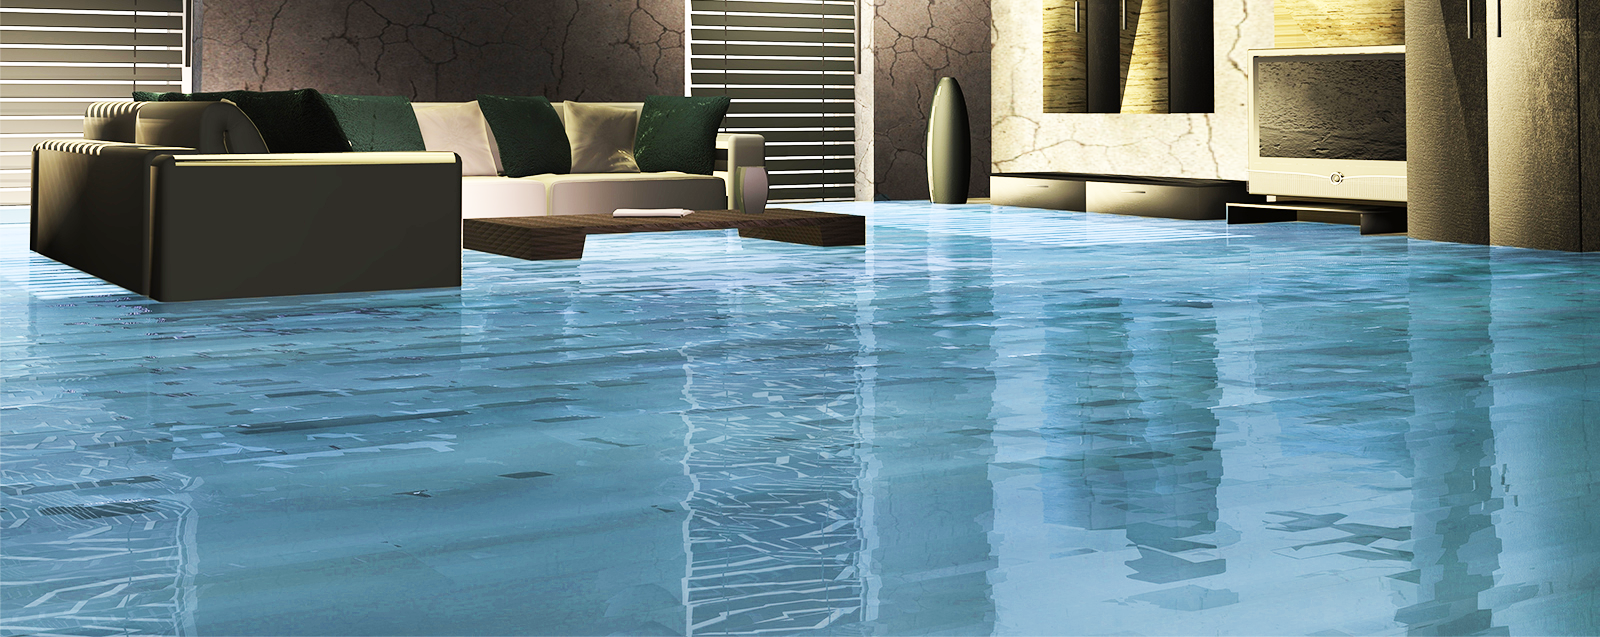 Water Damage Restoration Commercial Cleaning Services Perth